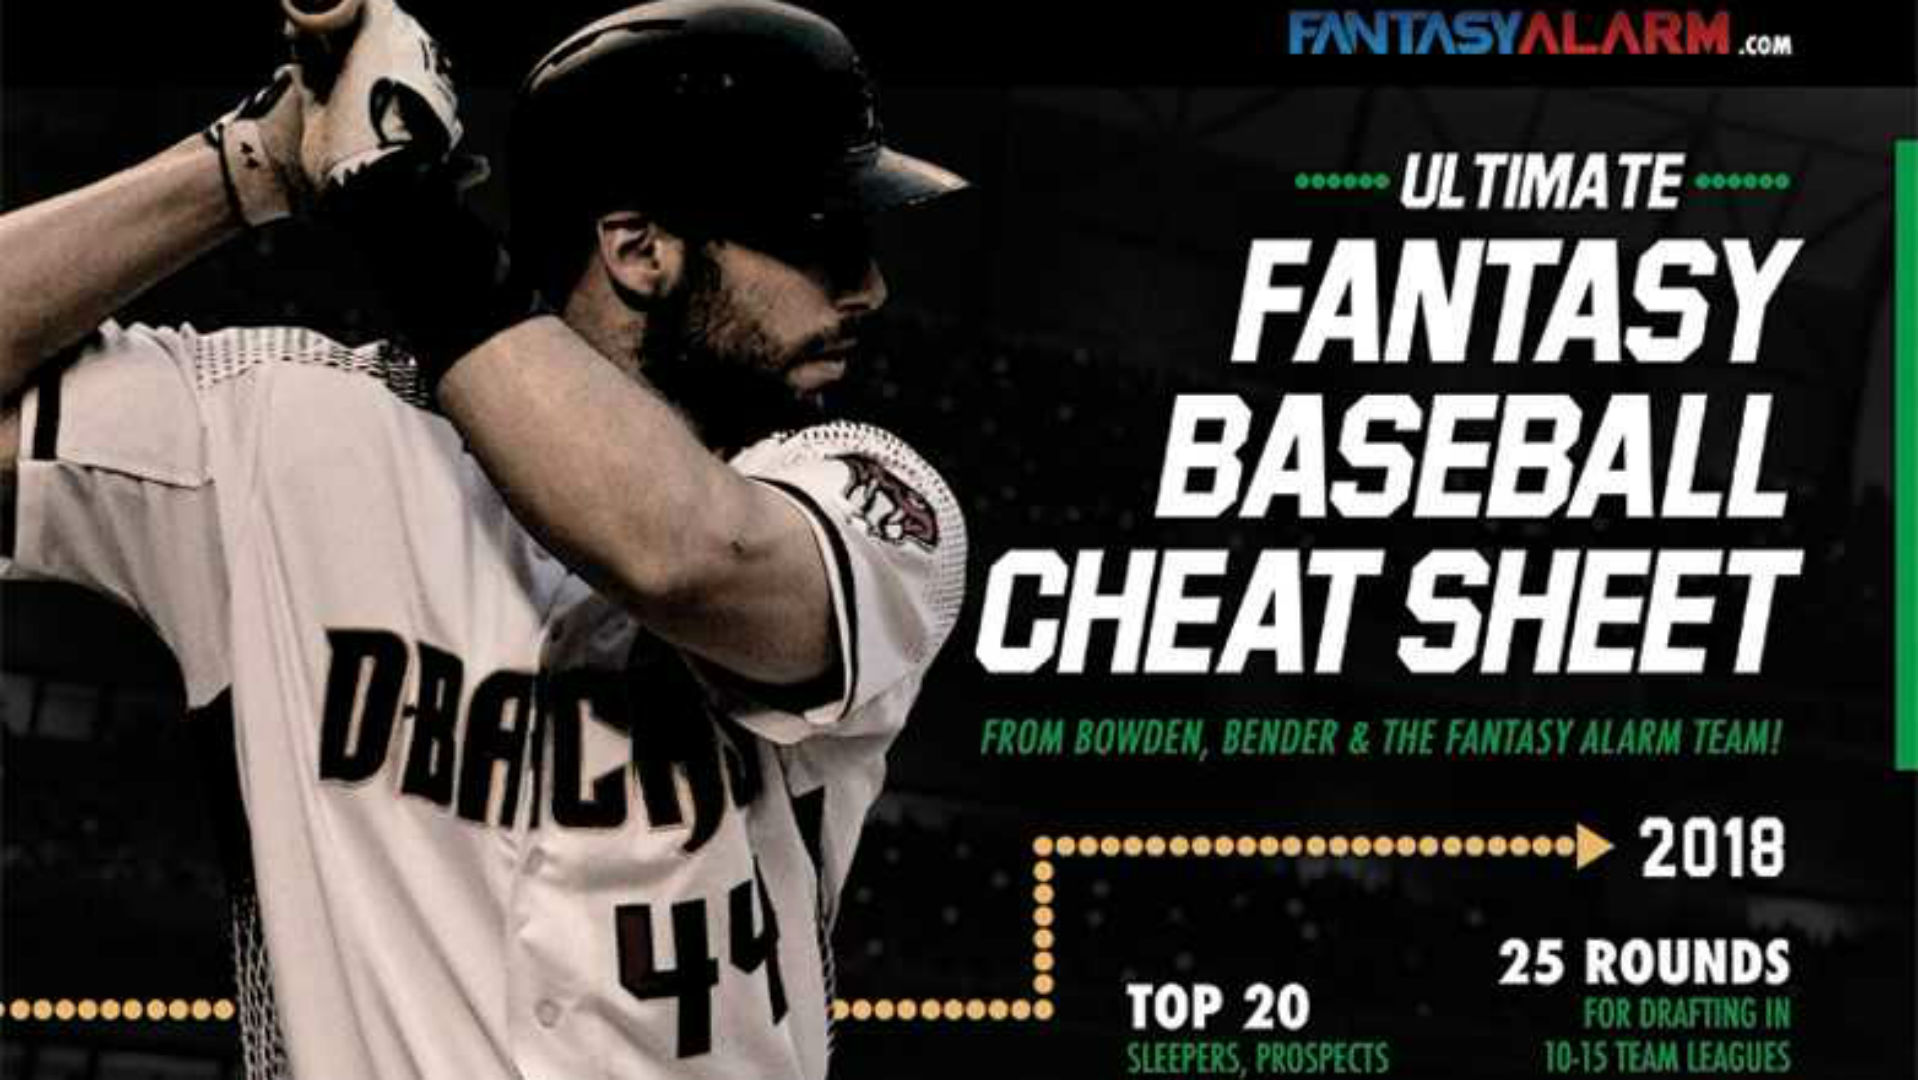 Perfect your draft strategy with Fantasy Alarm's Ultimate Fantasy Baseball Cheat Sheet